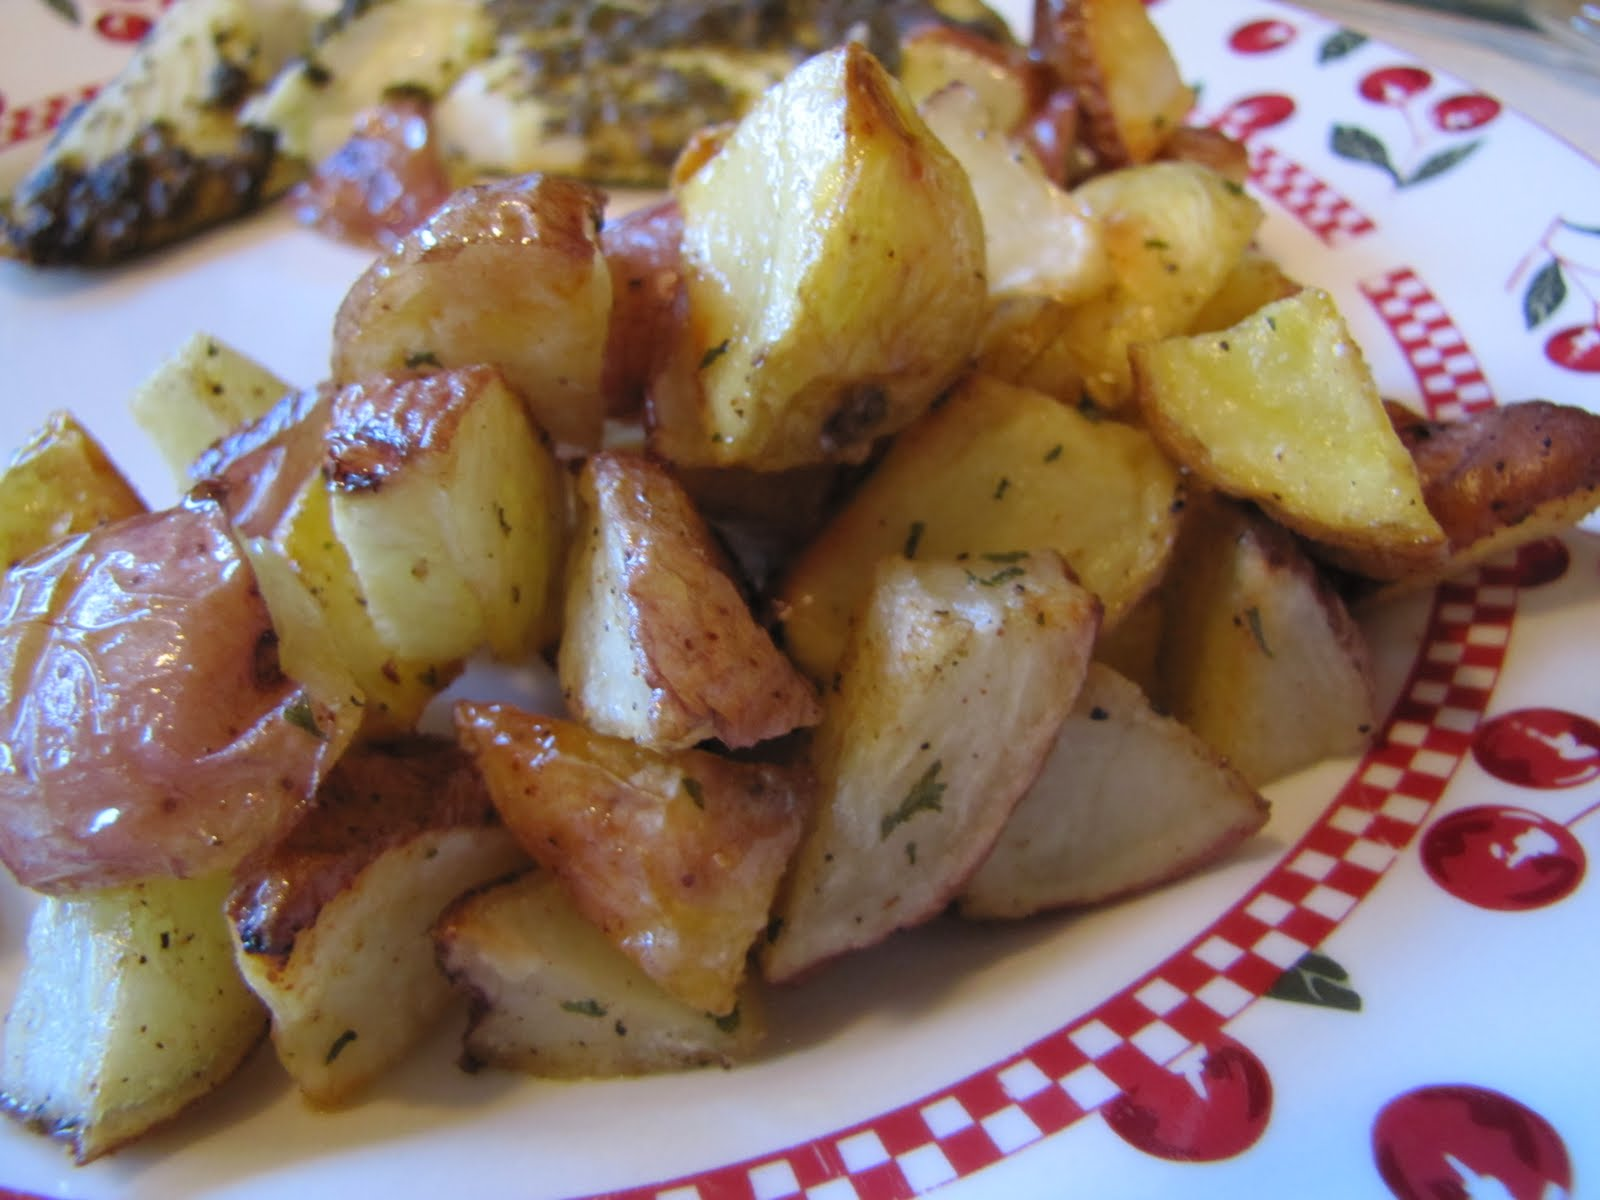 Adventures in Food: Oven-Roasted Red Potatoes